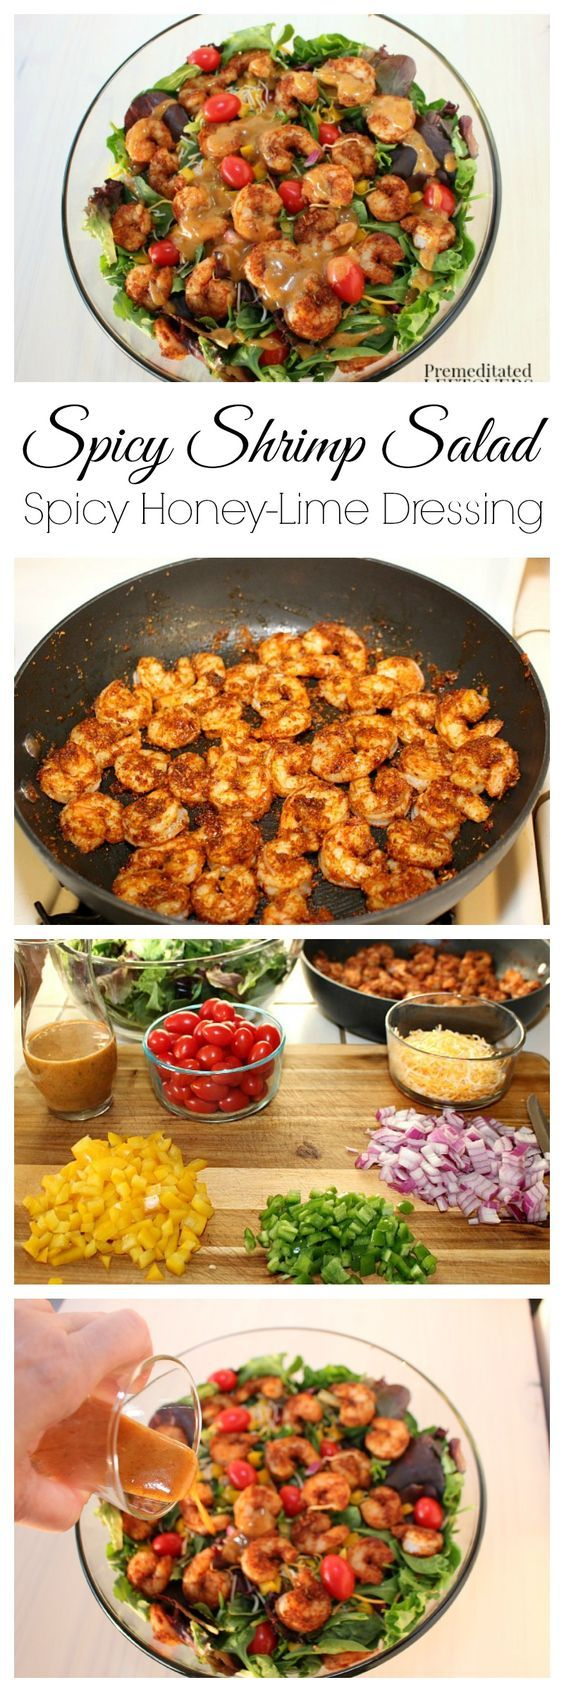 A quick and easy recipe for Southwest Shrimp Salad with Spicy Honey-Lime Dressing #hometailgate #sp